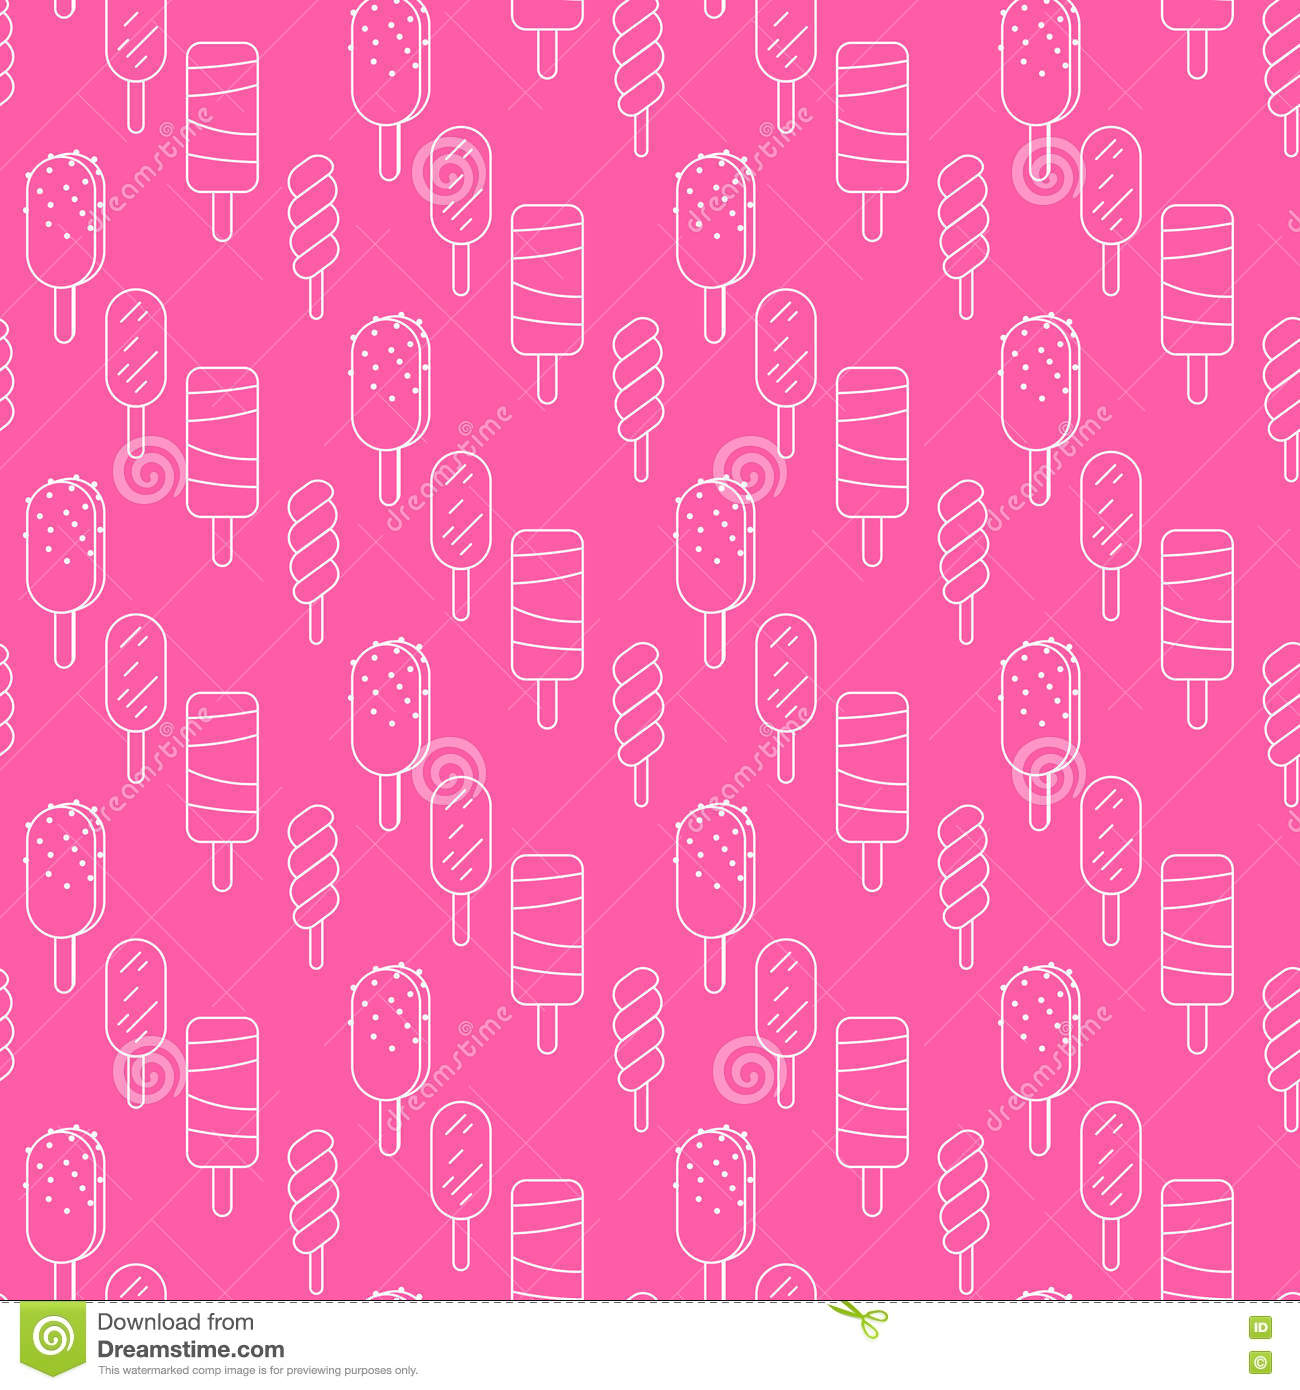 Seamless Wallpaper Pattern With Ice Cream Icons Stock: Ice Cream Vector Seamless Pattern. Summer Collection